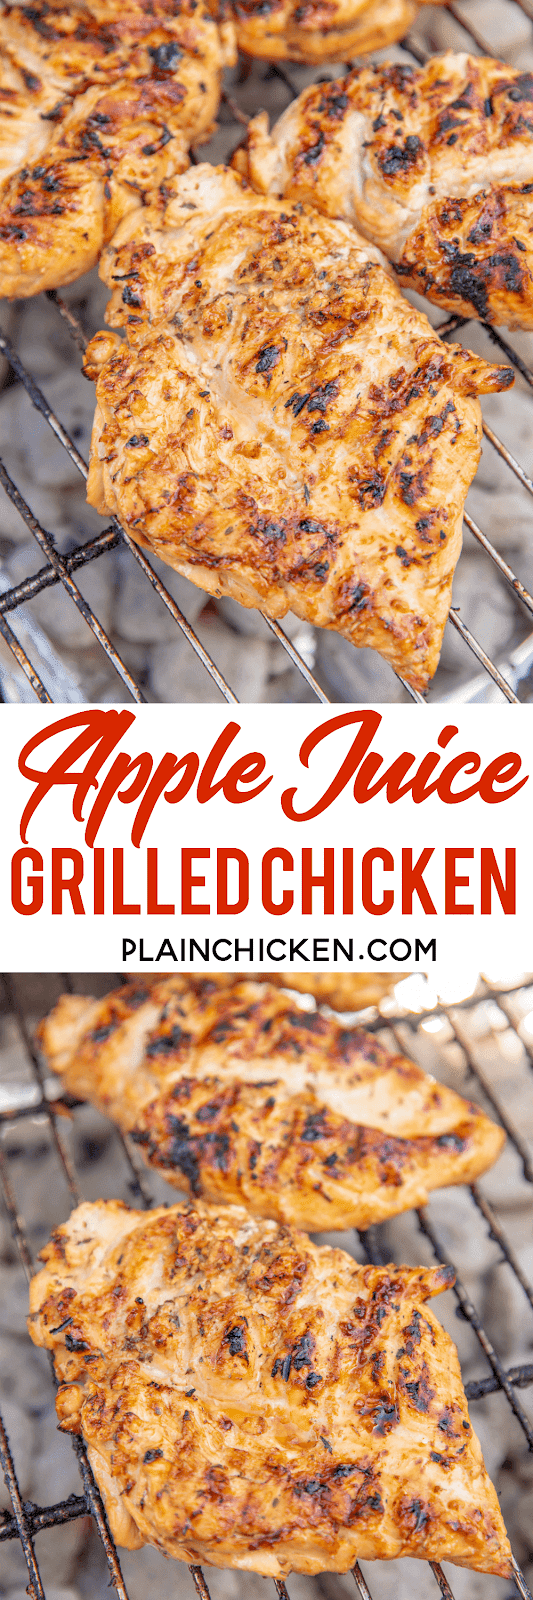 Apple Juice Grilled Chicken - so juicy and packed full of amazing flavor!! Chicken marinated in apple juice, brown sugar, soy sauce, lemon juice and garlic. SO simple and SOOO delicious!! We ate this twice in one day! Leftovers are great chopped up on a salad or in a wrap. Grill up a double batch today for easy meal prep all week! YUM! #grilling #chicken #grilledchicken #marinade